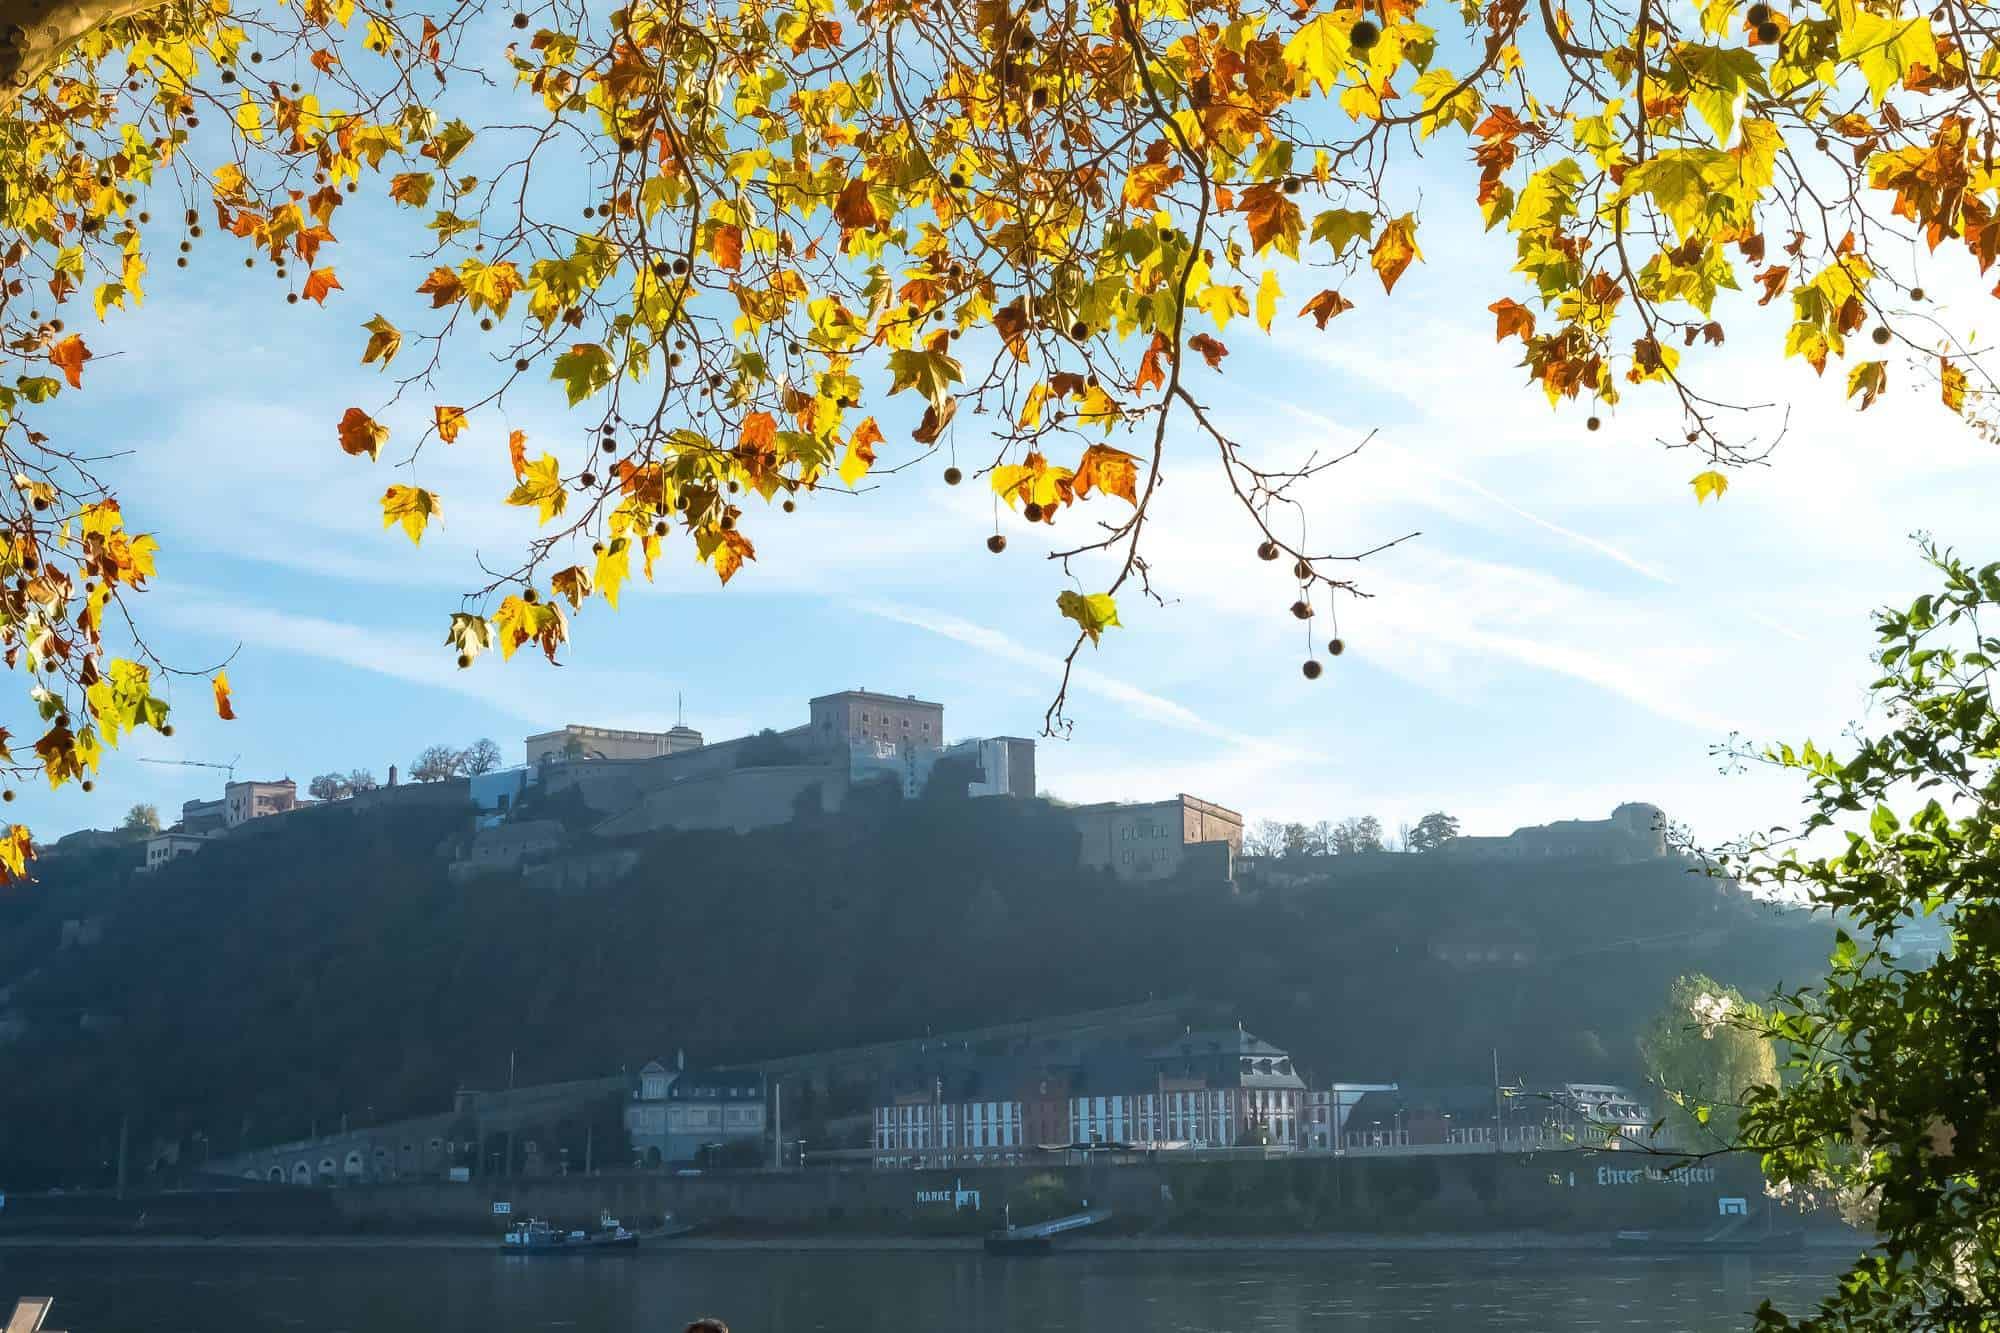 things to do in koblenz, attractions in koblenz, things to see in koblenz, what to do in koblenz, germany, salking tour, rhine cruise, castle, wine tasting, german corner, where to stay in koblenz, restaurants in koblenz, train